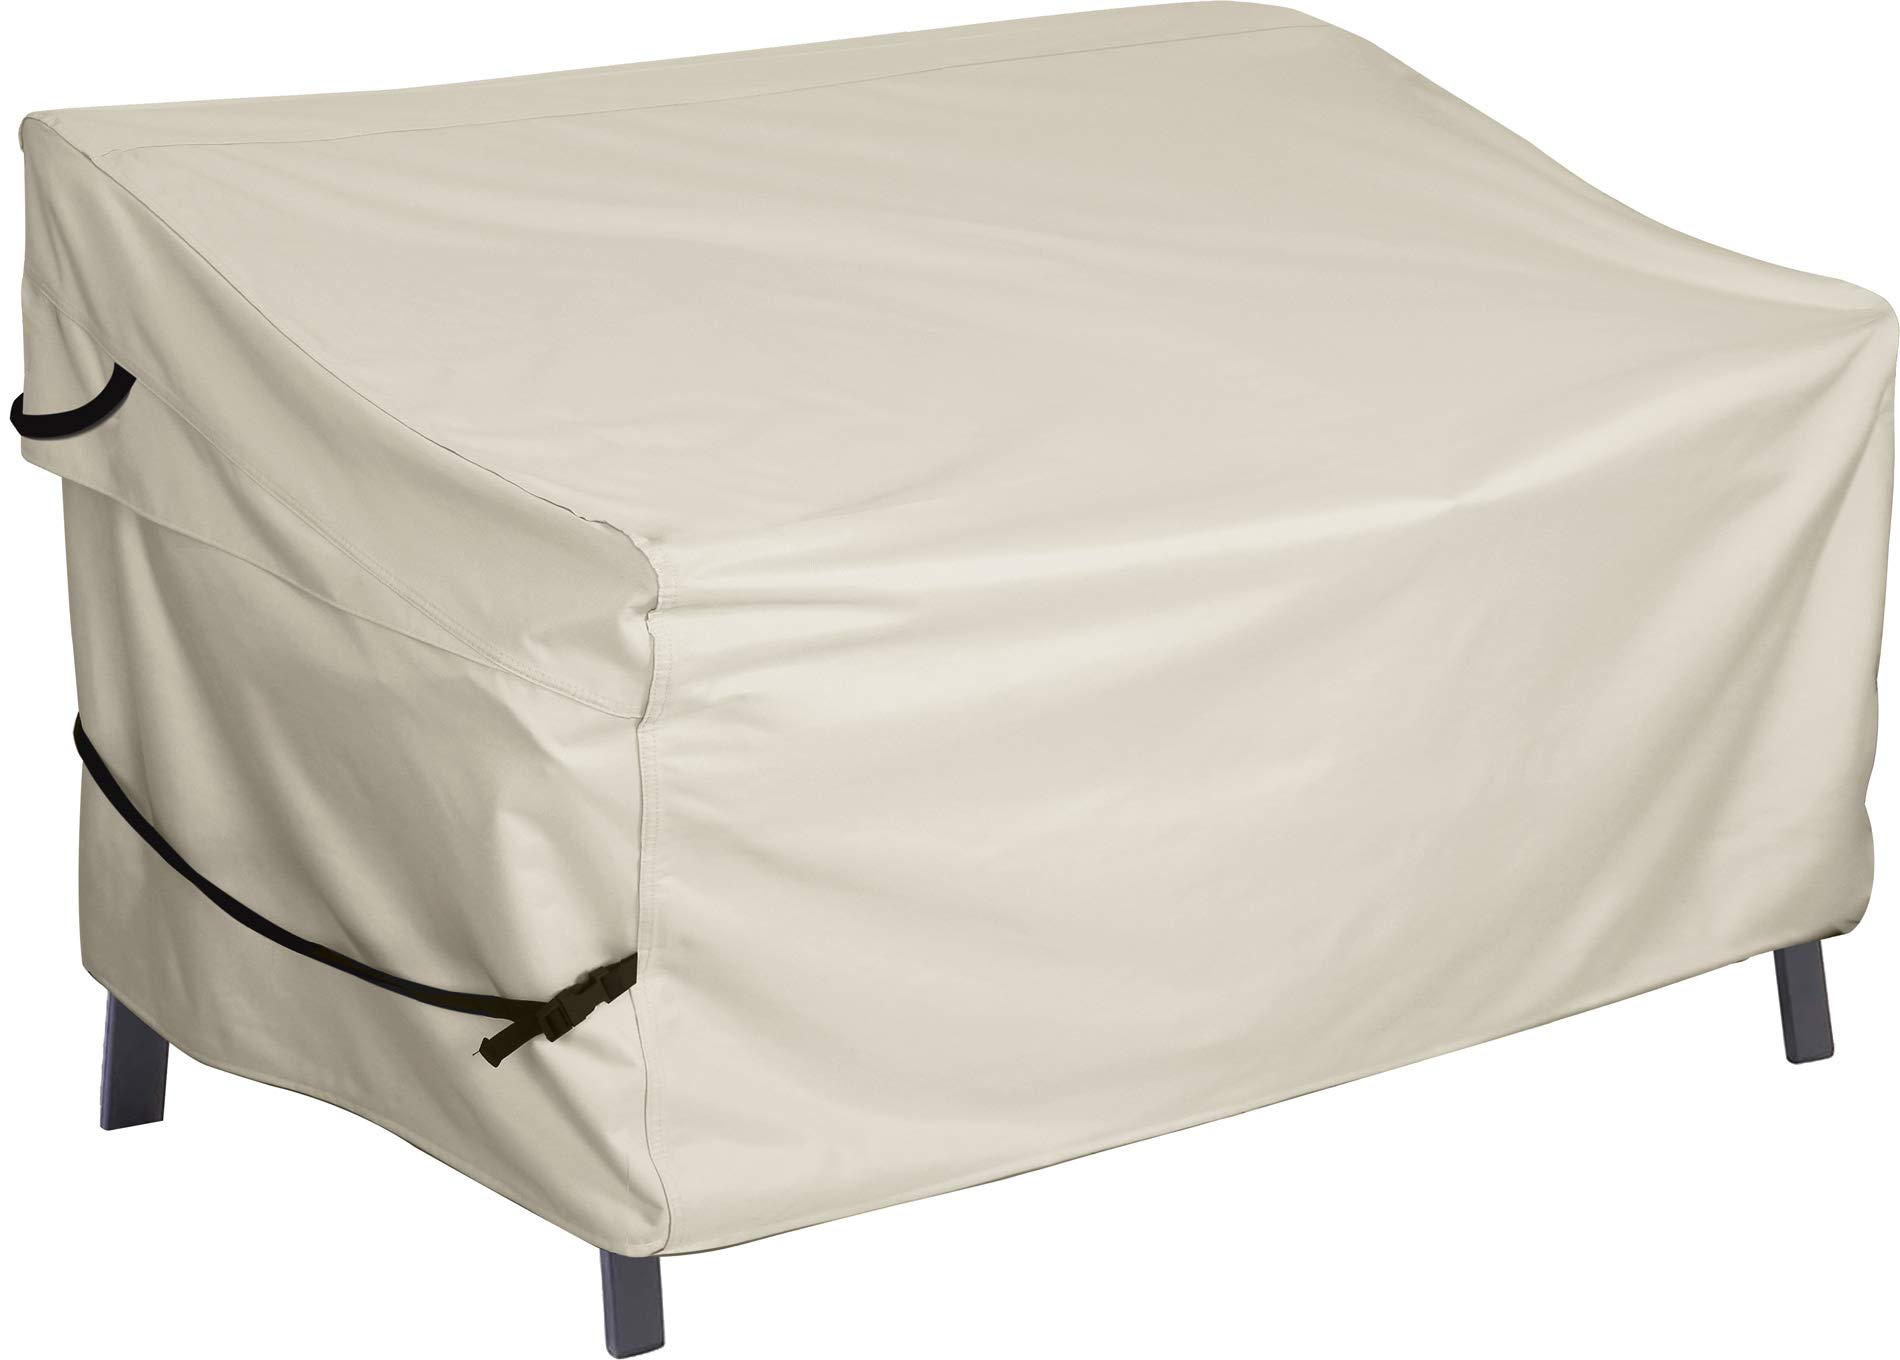 Porch Shield Patio 3-Seater Loveseat Sofa Cover – Waterproof Outdoor Bench Deep Lounge Seat Sofa Covers 77W x 35D x 35H inch, Beige